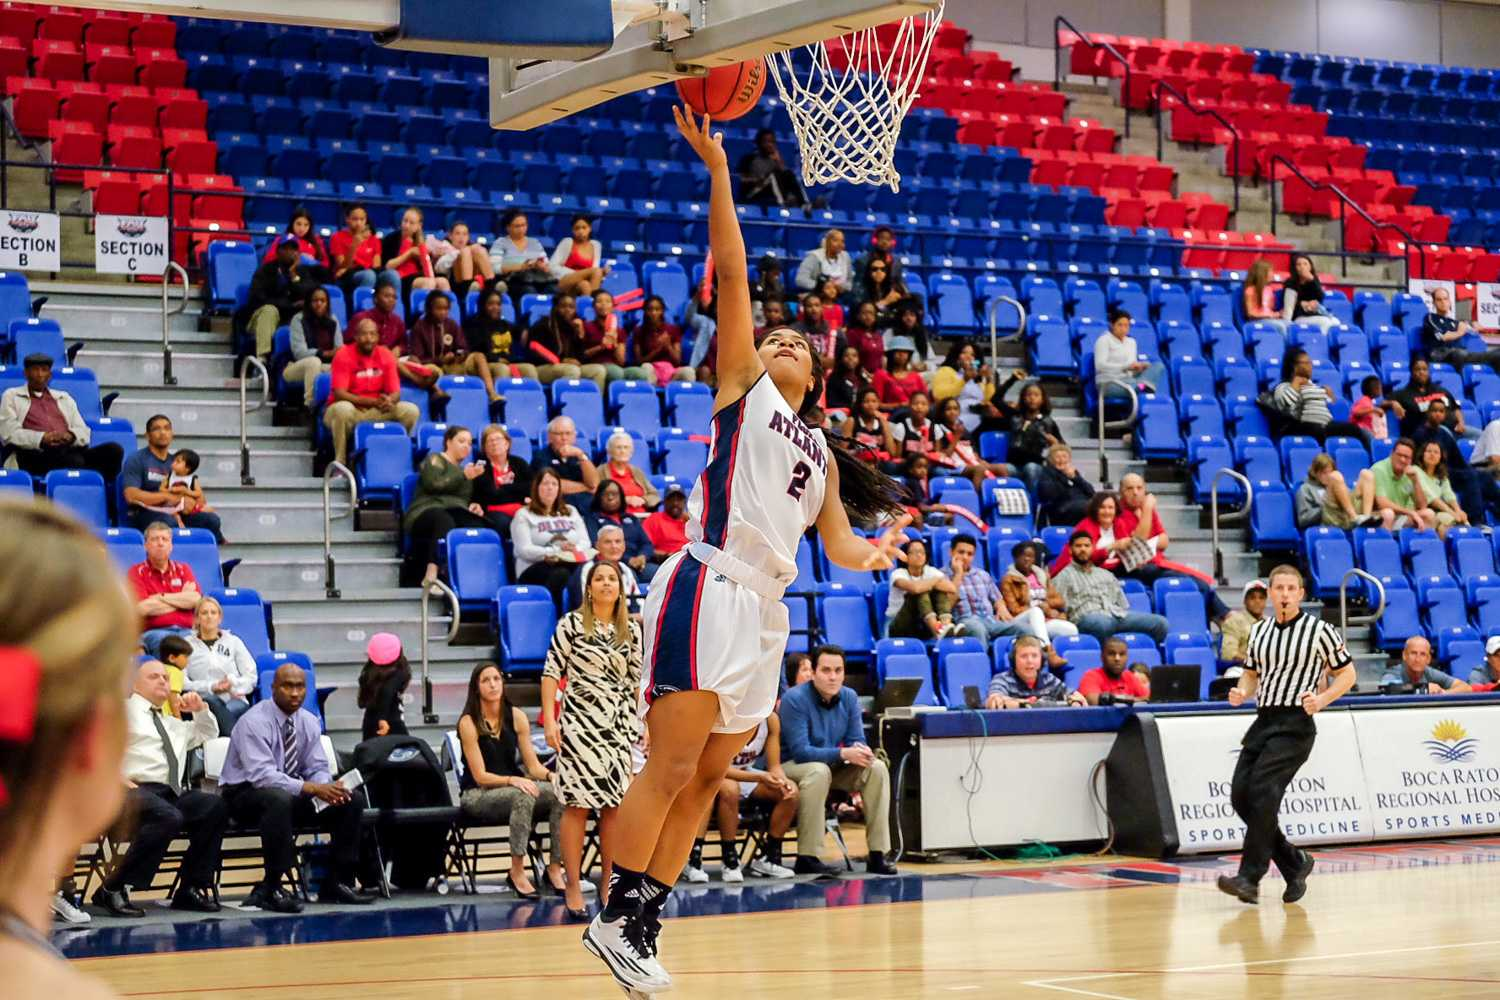 Sophomore guard Shaneese Bailey led FAU with 25 points in their win over FIU on Jan. 24. Photo by Mohammed F. Emran